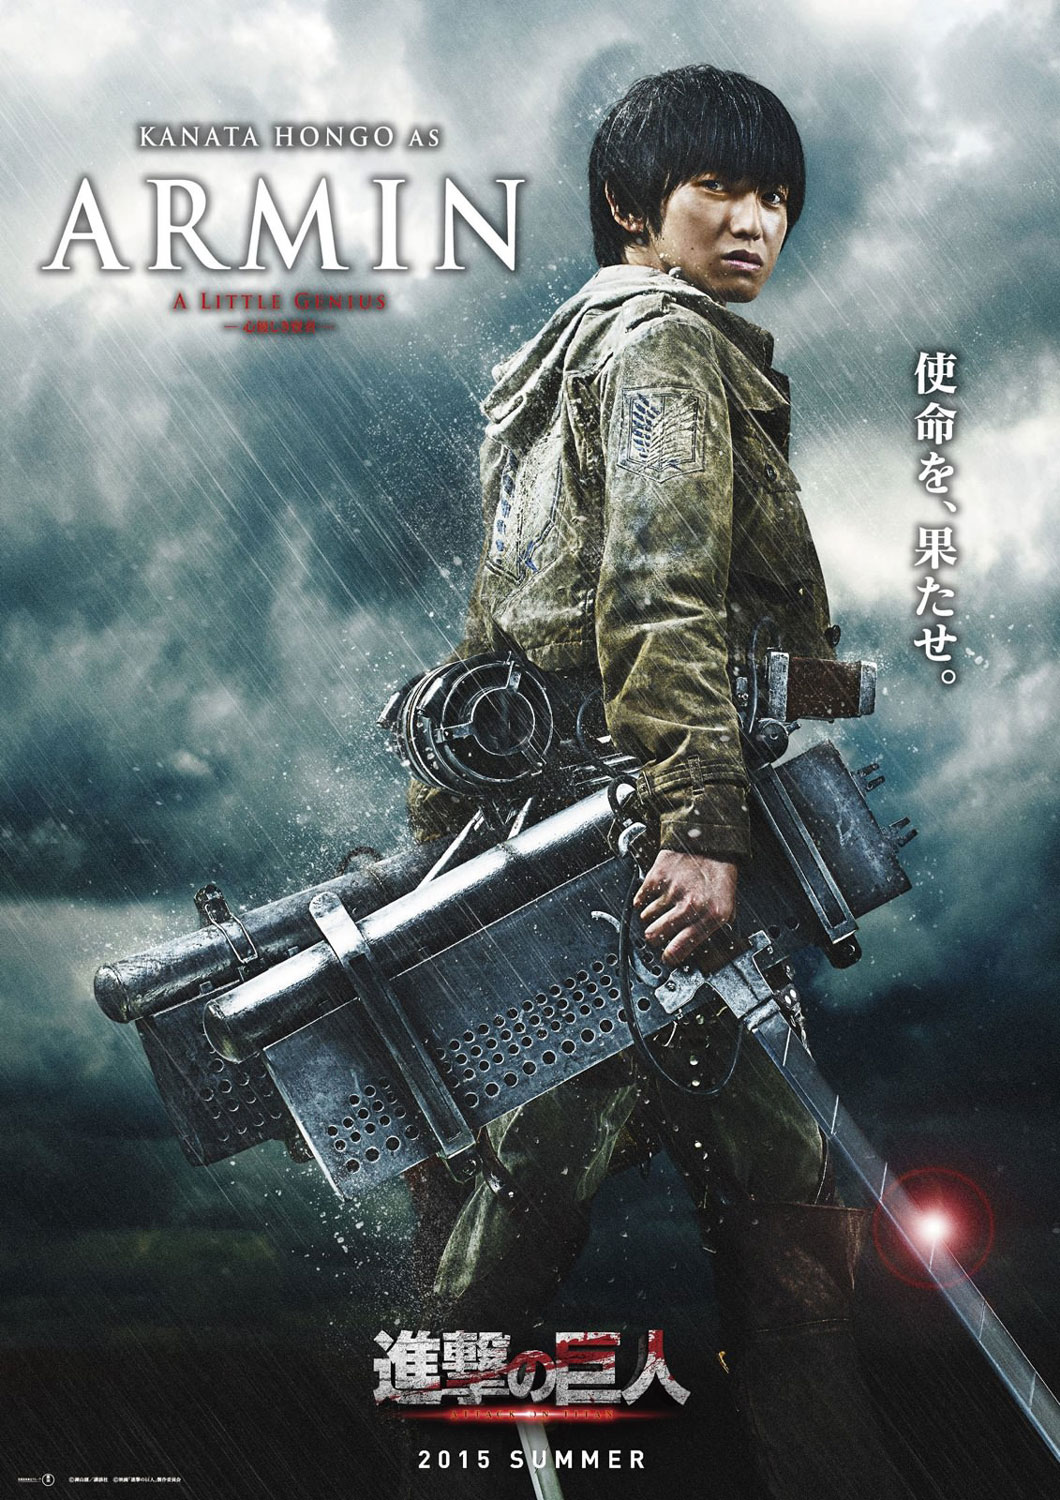 Kanata Hongo Attack on Titan Armin